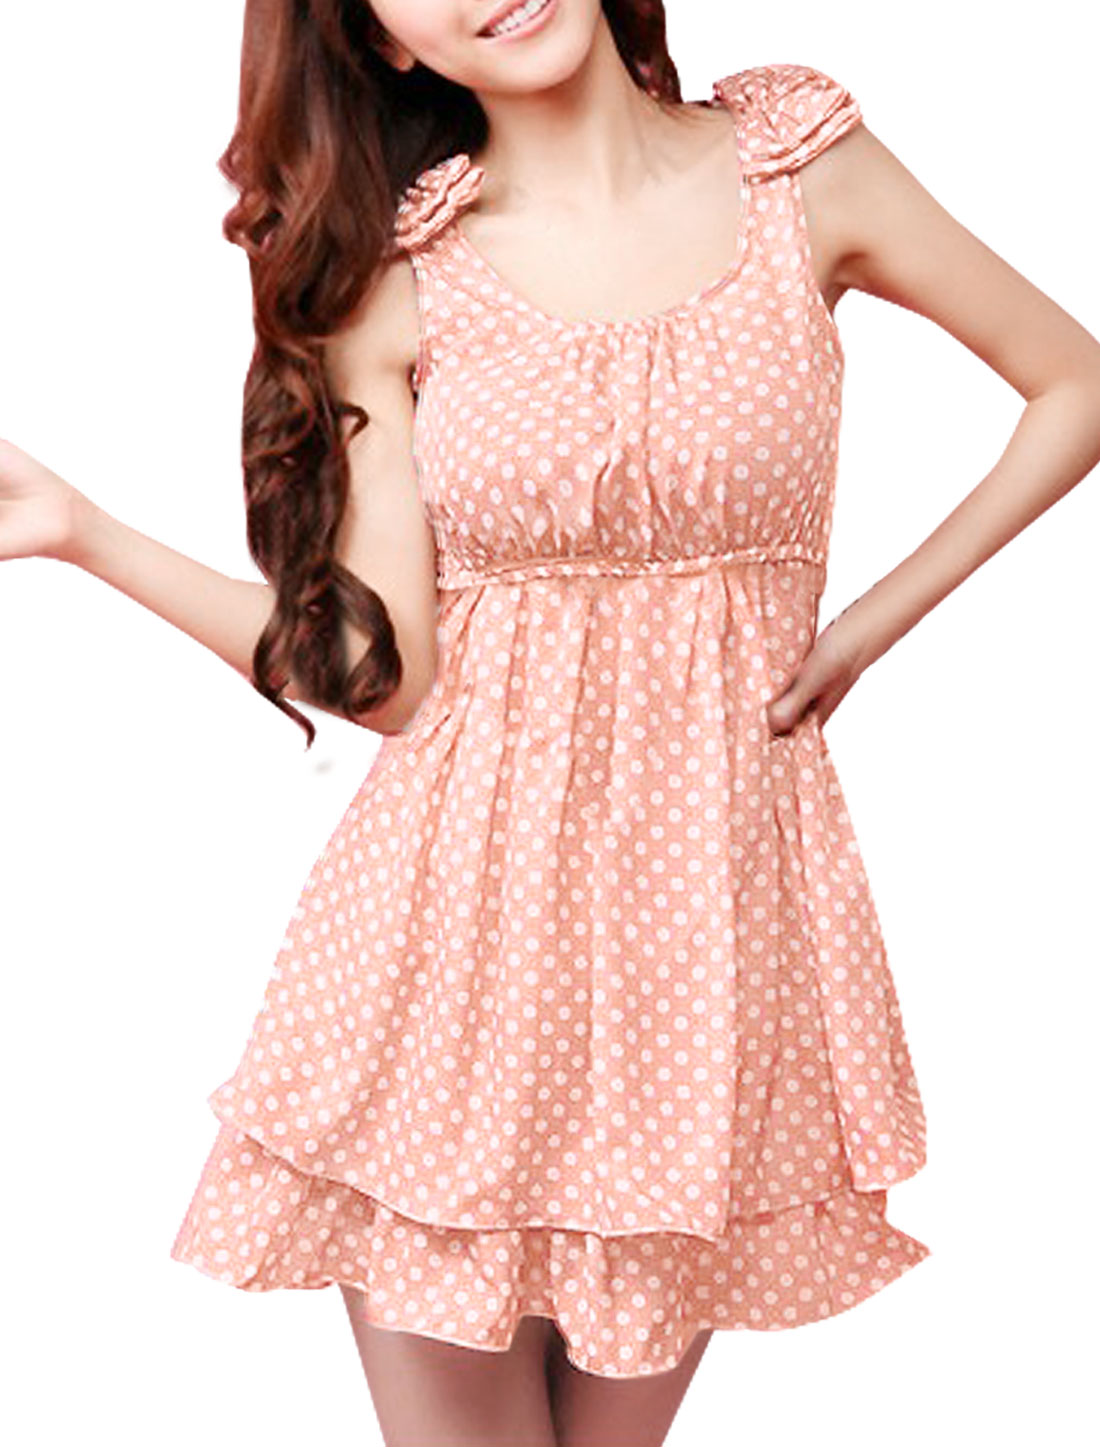 Lady Chic Bowknot Decor Shoulder Dots Pattern Light Pink Mini Dress XL